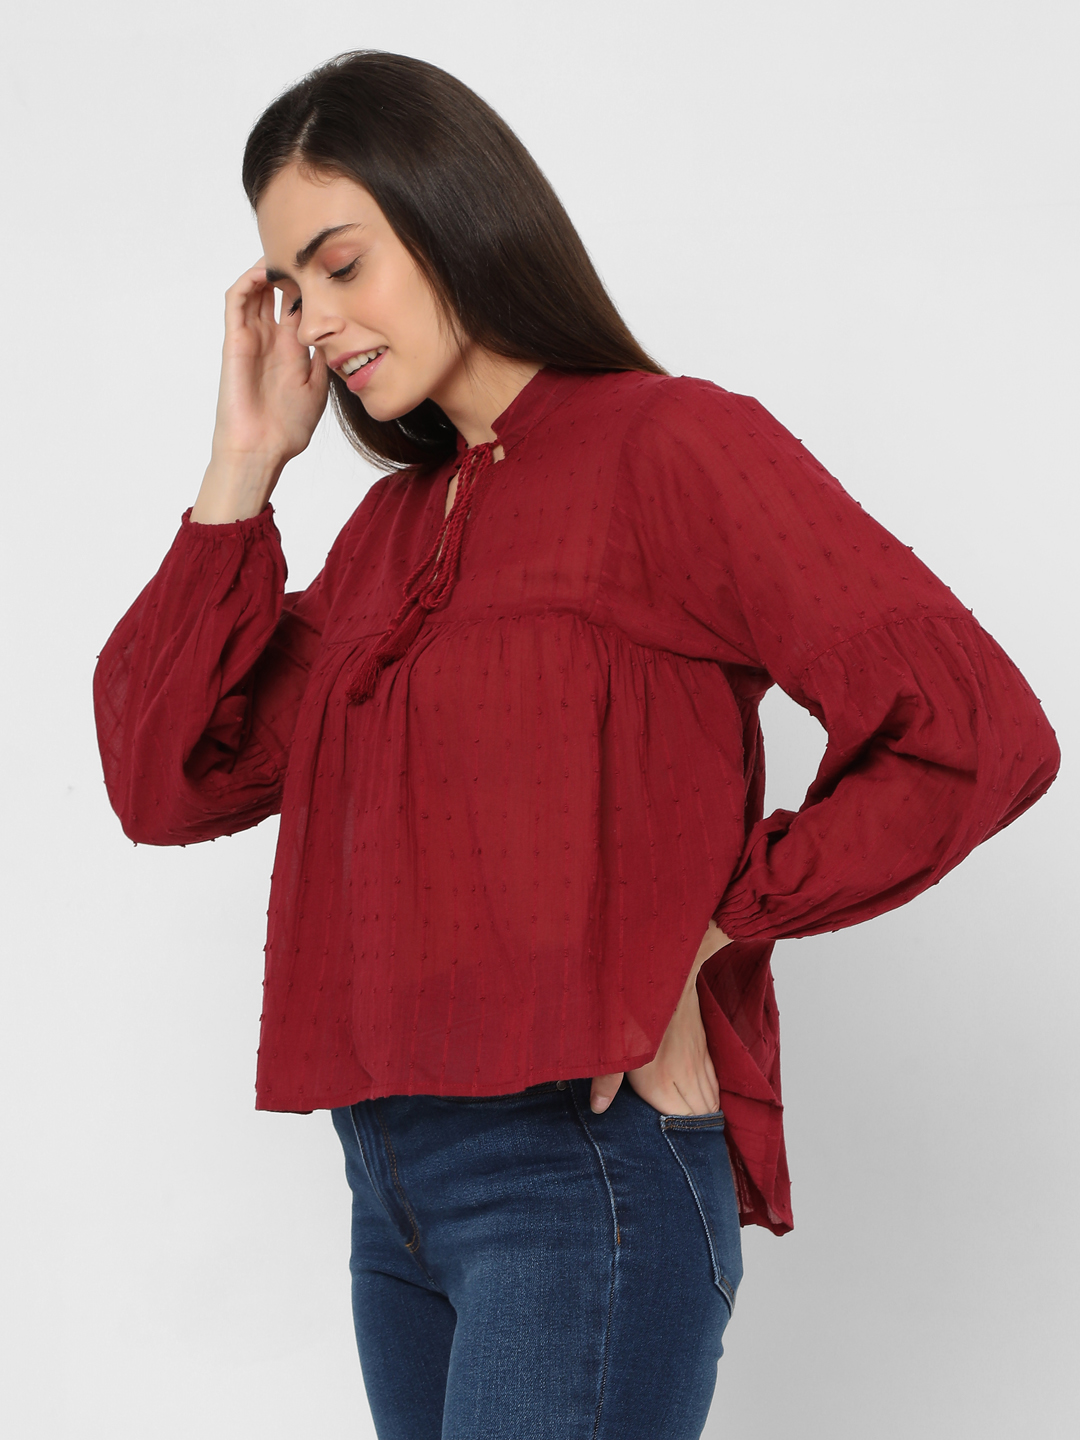 Red Textured Boho Top